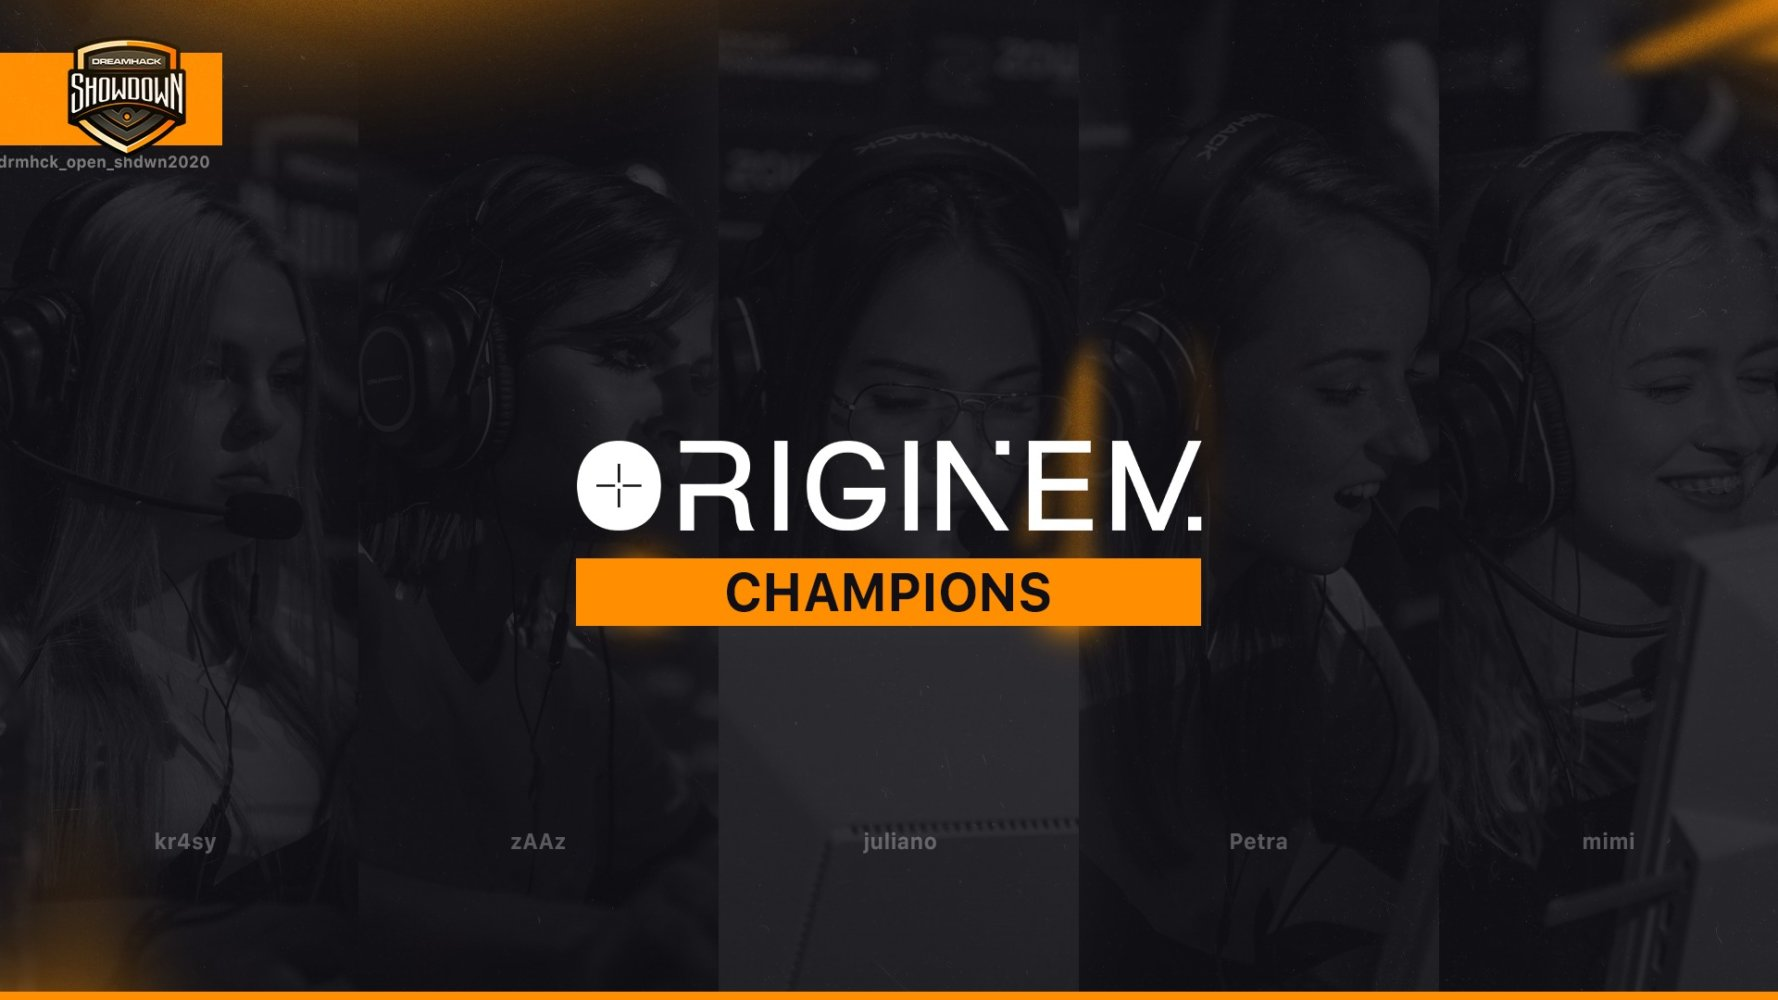 team originem remporte la dramhack showdown summer